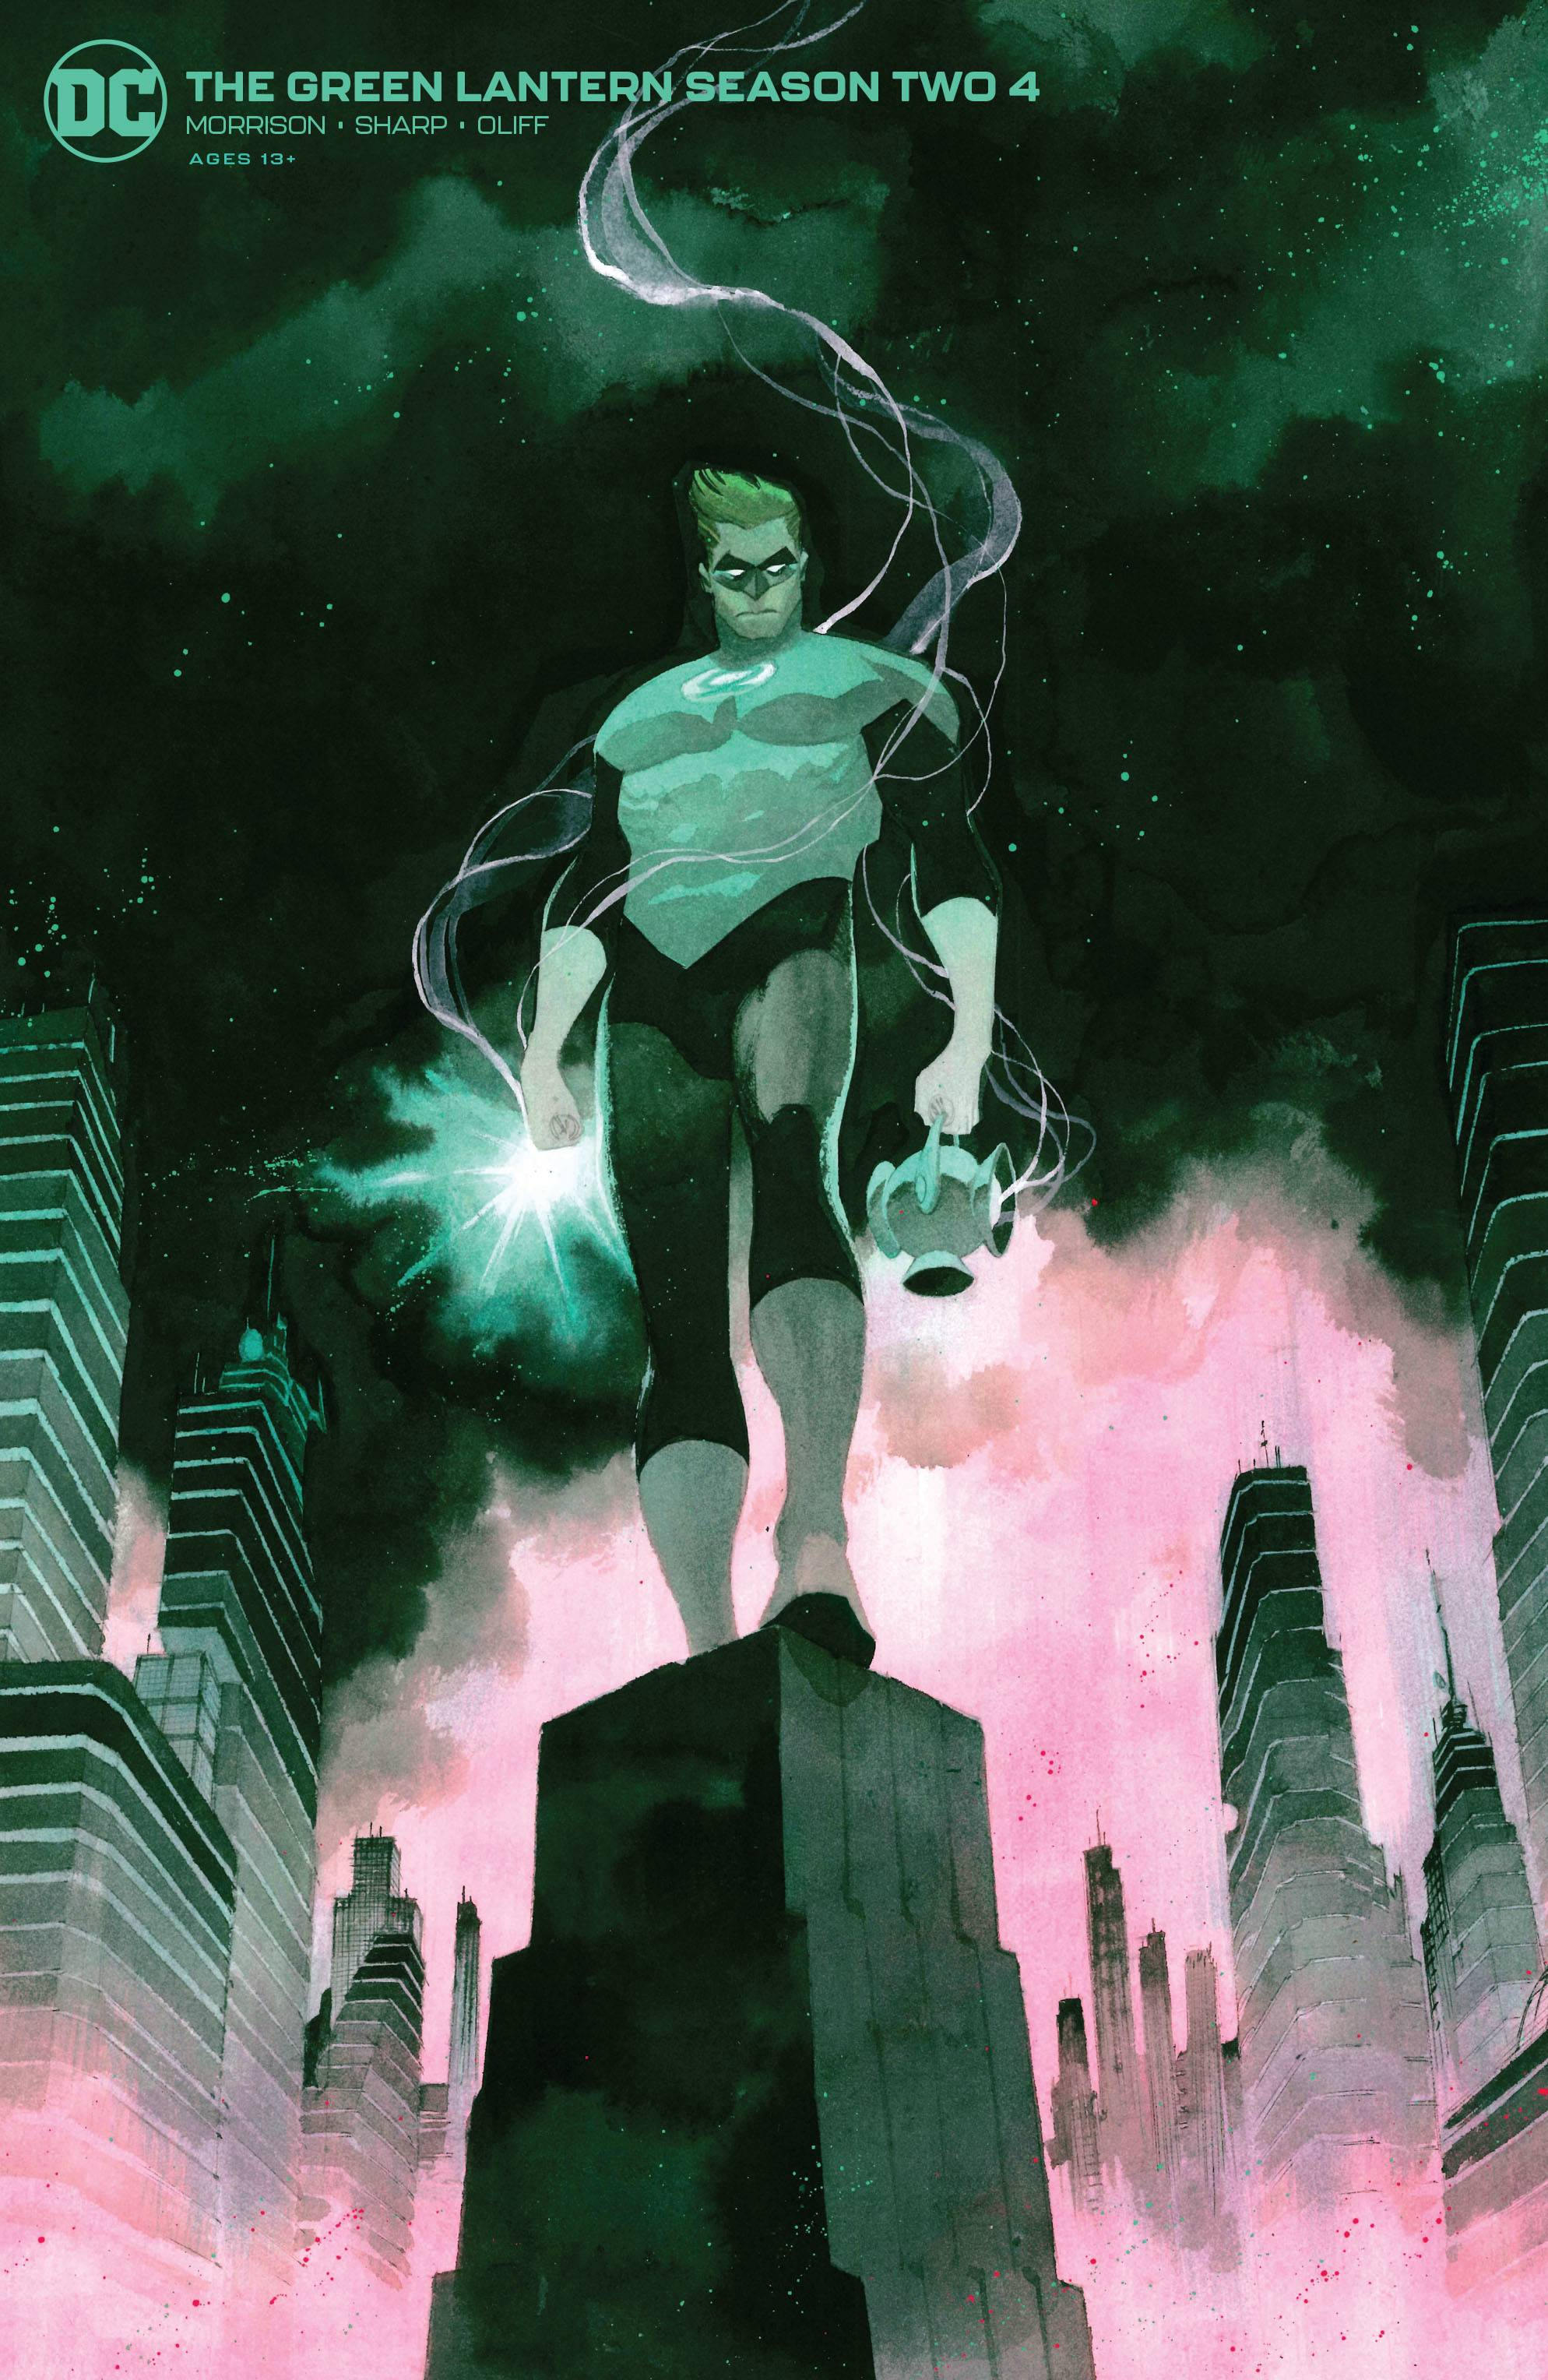 Green Lantern Season Two #4